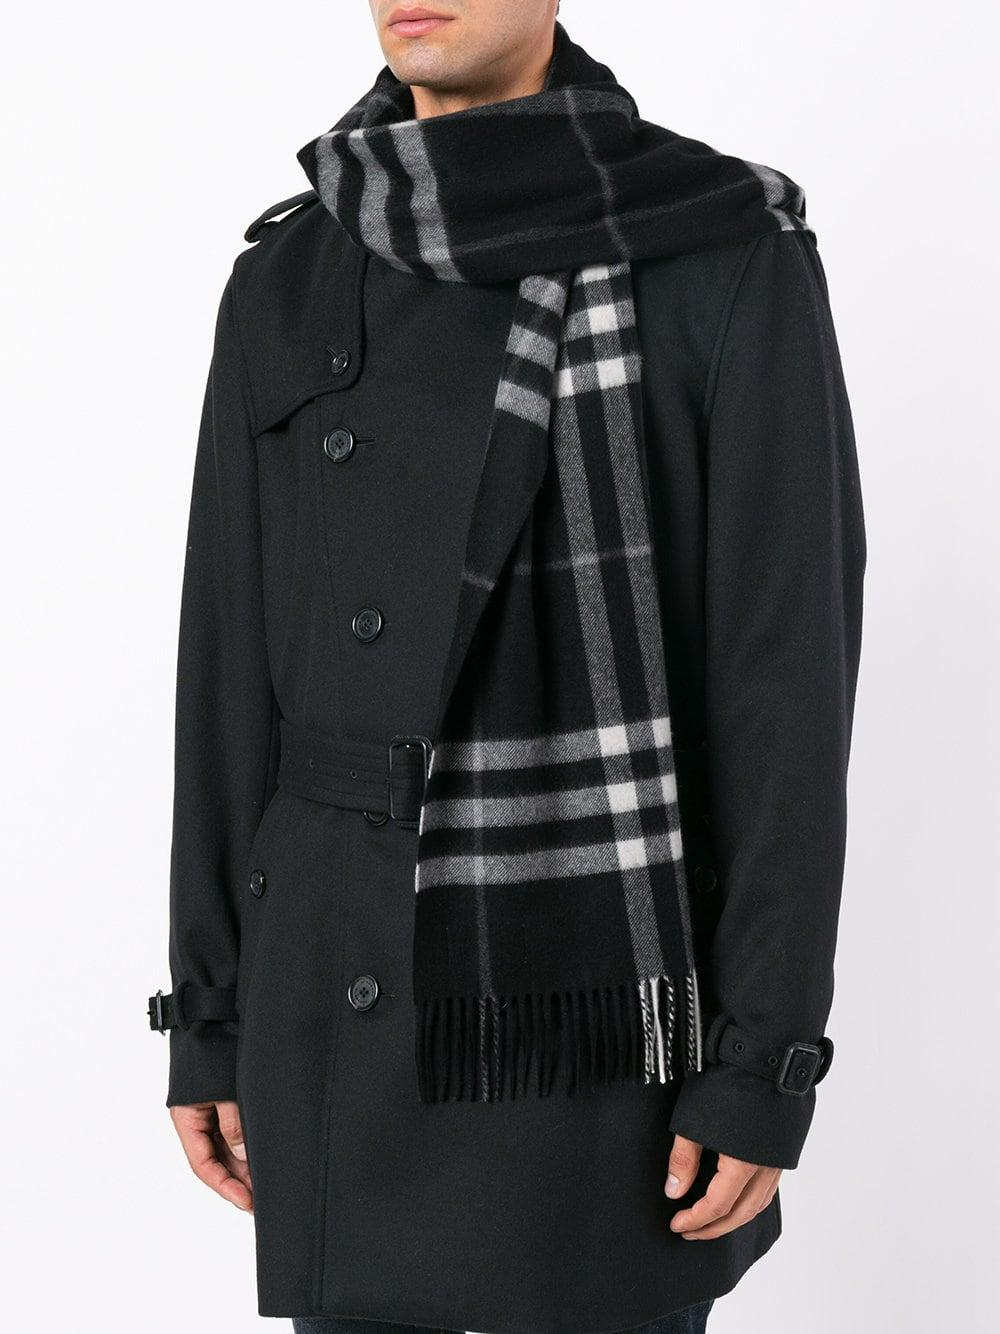 c1ba05cb4c66 Burberry - Black Fringed Checked Scarf for Men - Lyst. View fullscreen